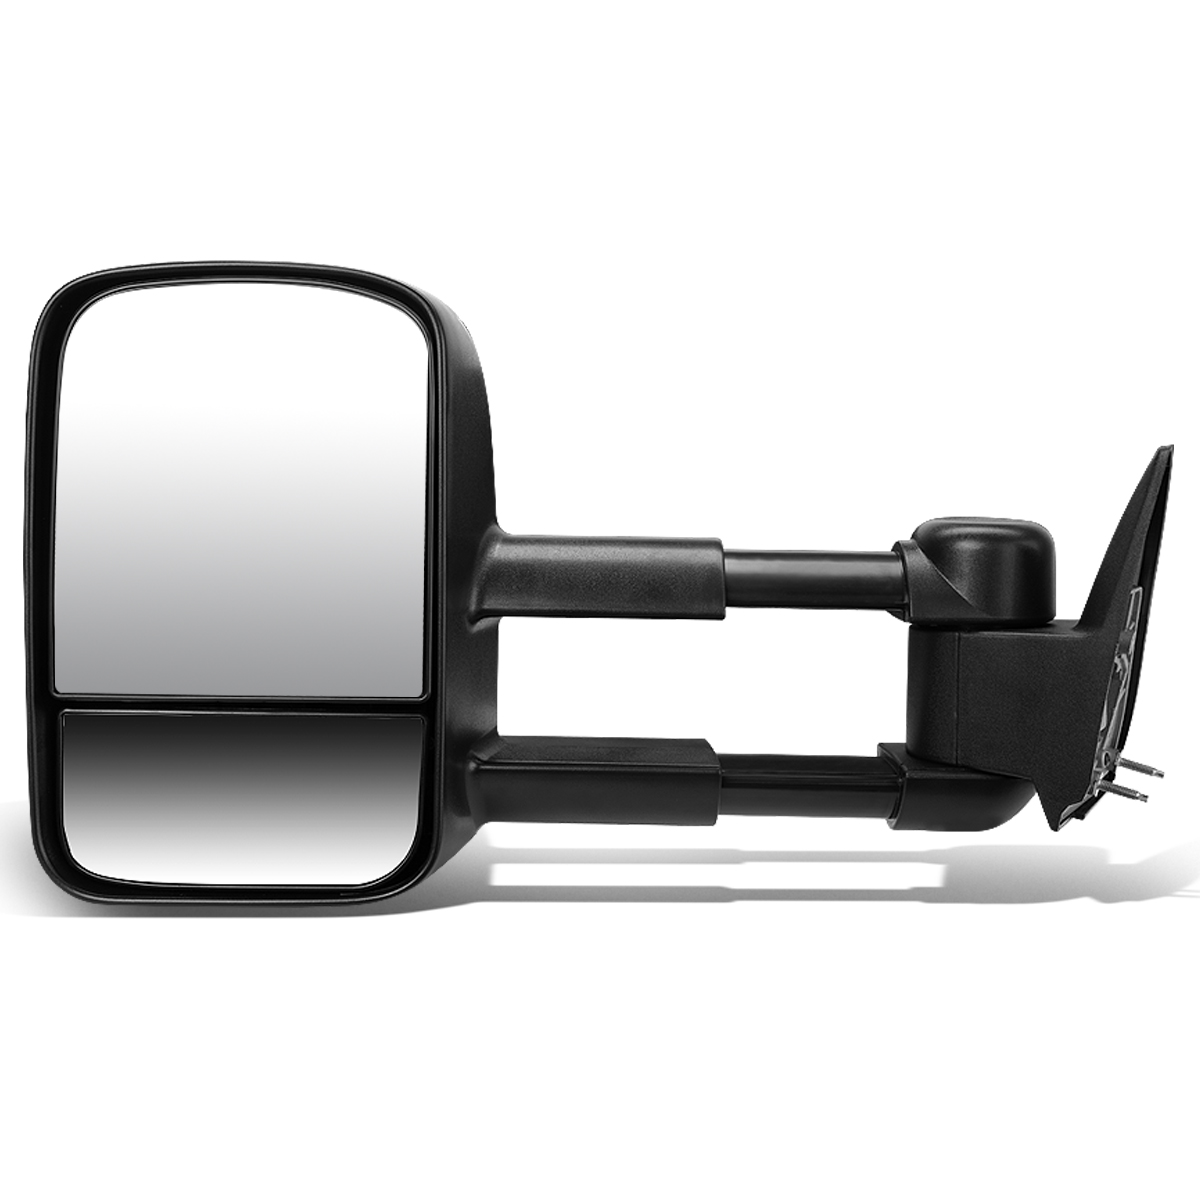 For 1988-2002 Chevy/GMC C/K 1500/2500/3500 Powered Adjustment Tow Towing Mirror (Right/Passenger)